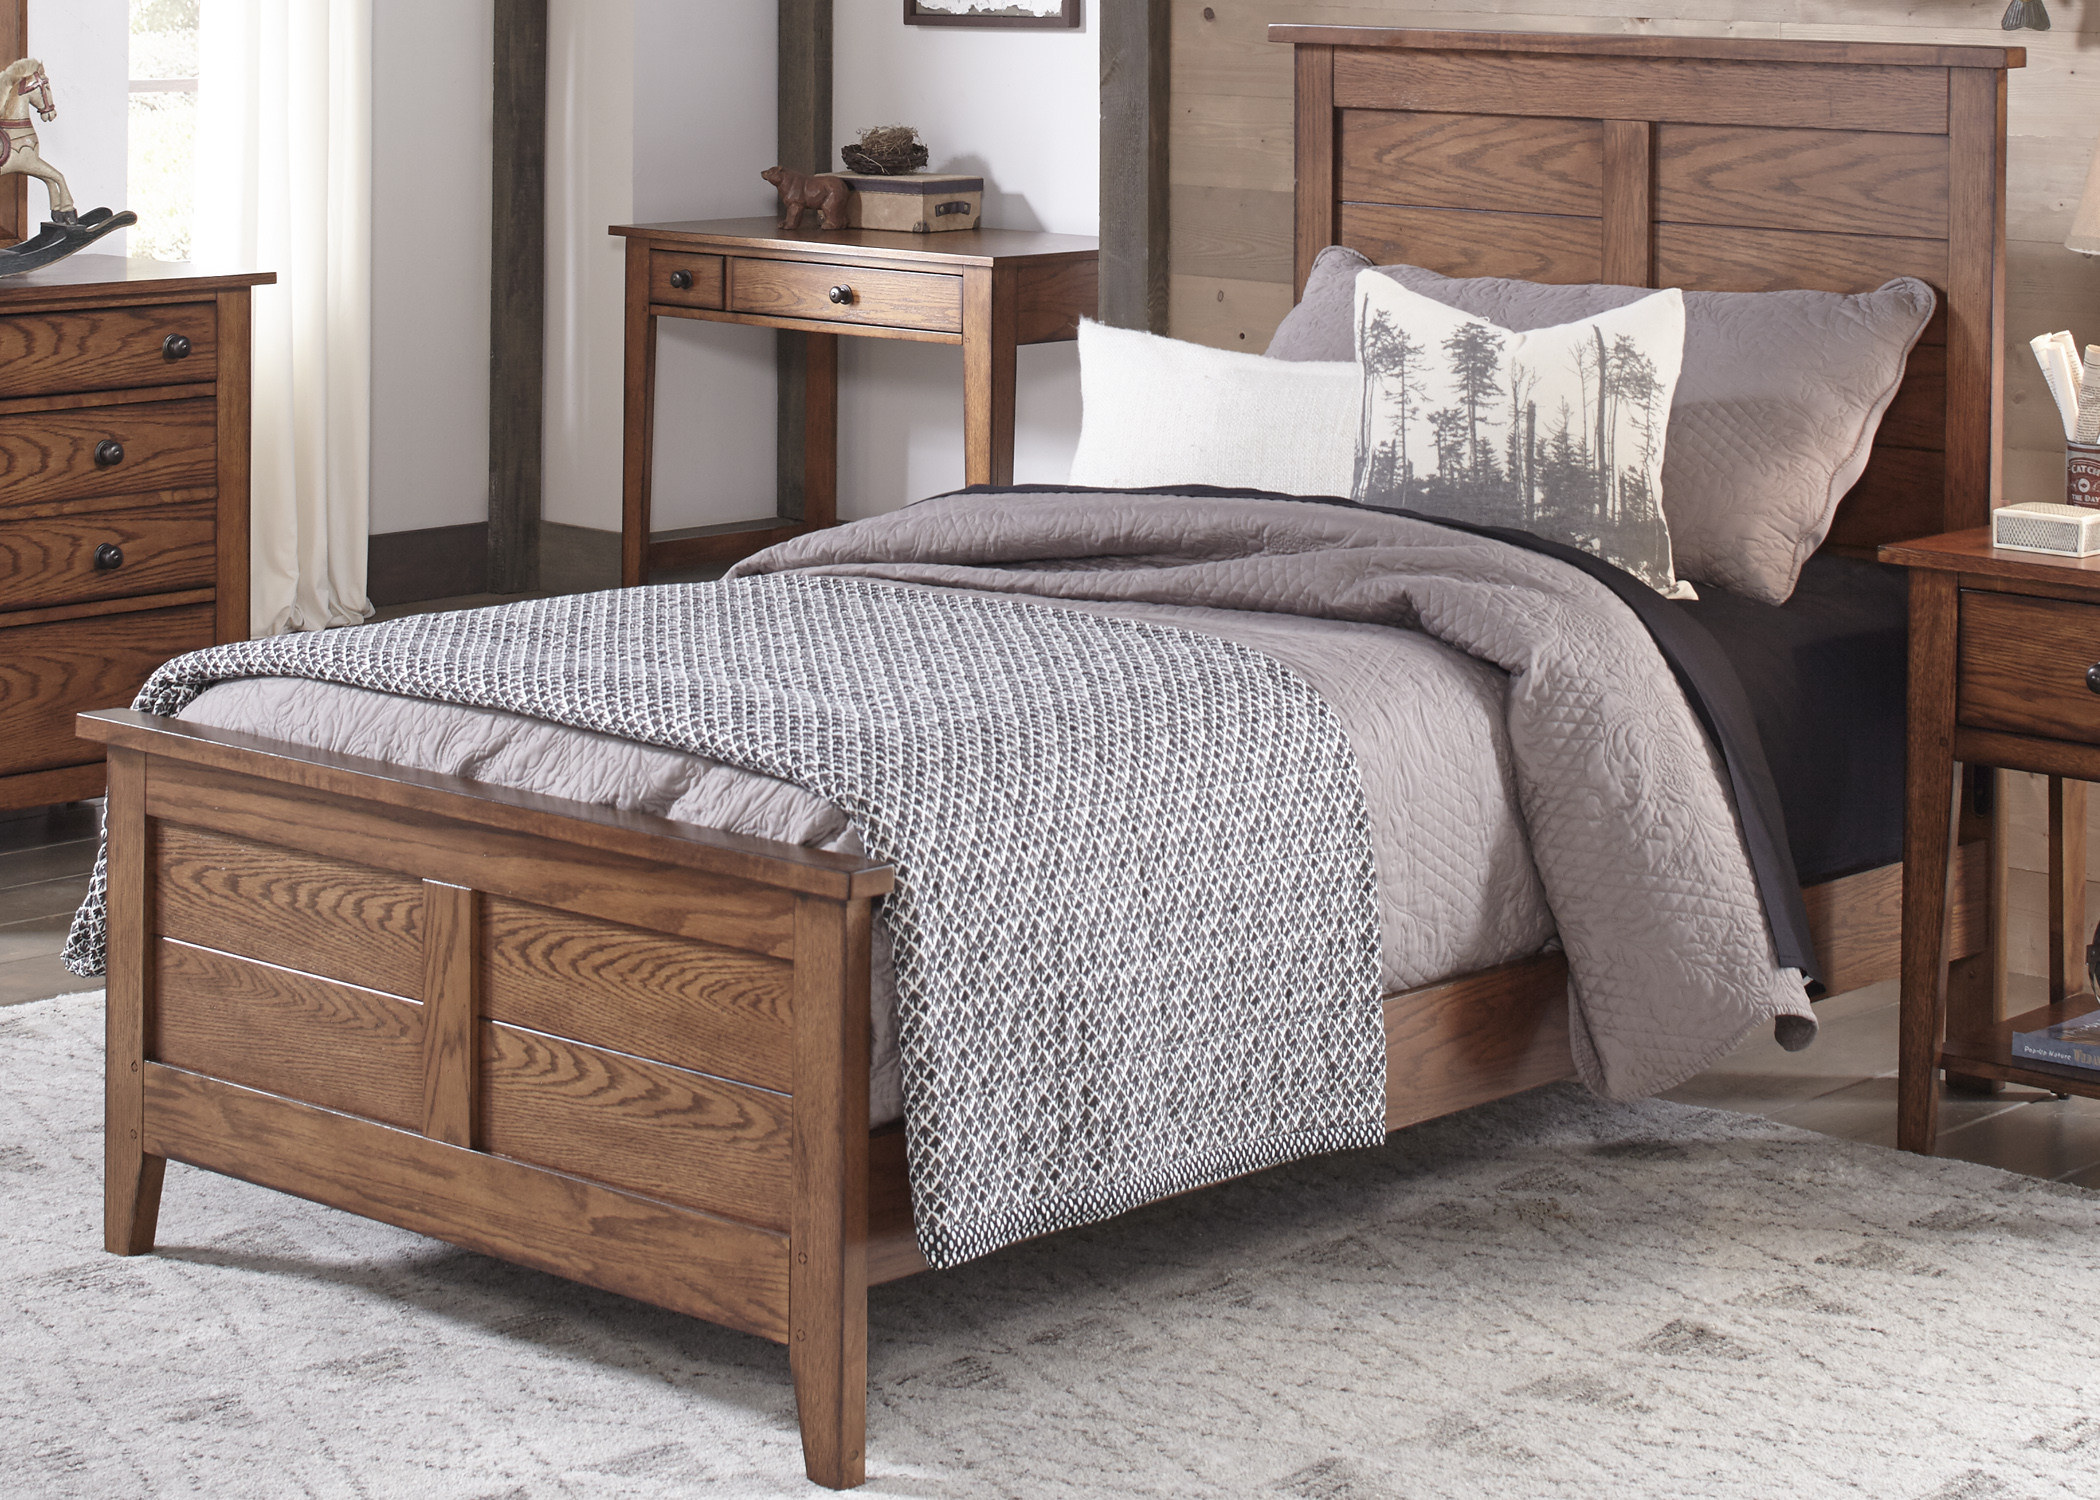 Liberty Furniture Grandpa's Cabin Full Panel Bed  - Item Number: 175-YBR-FPB